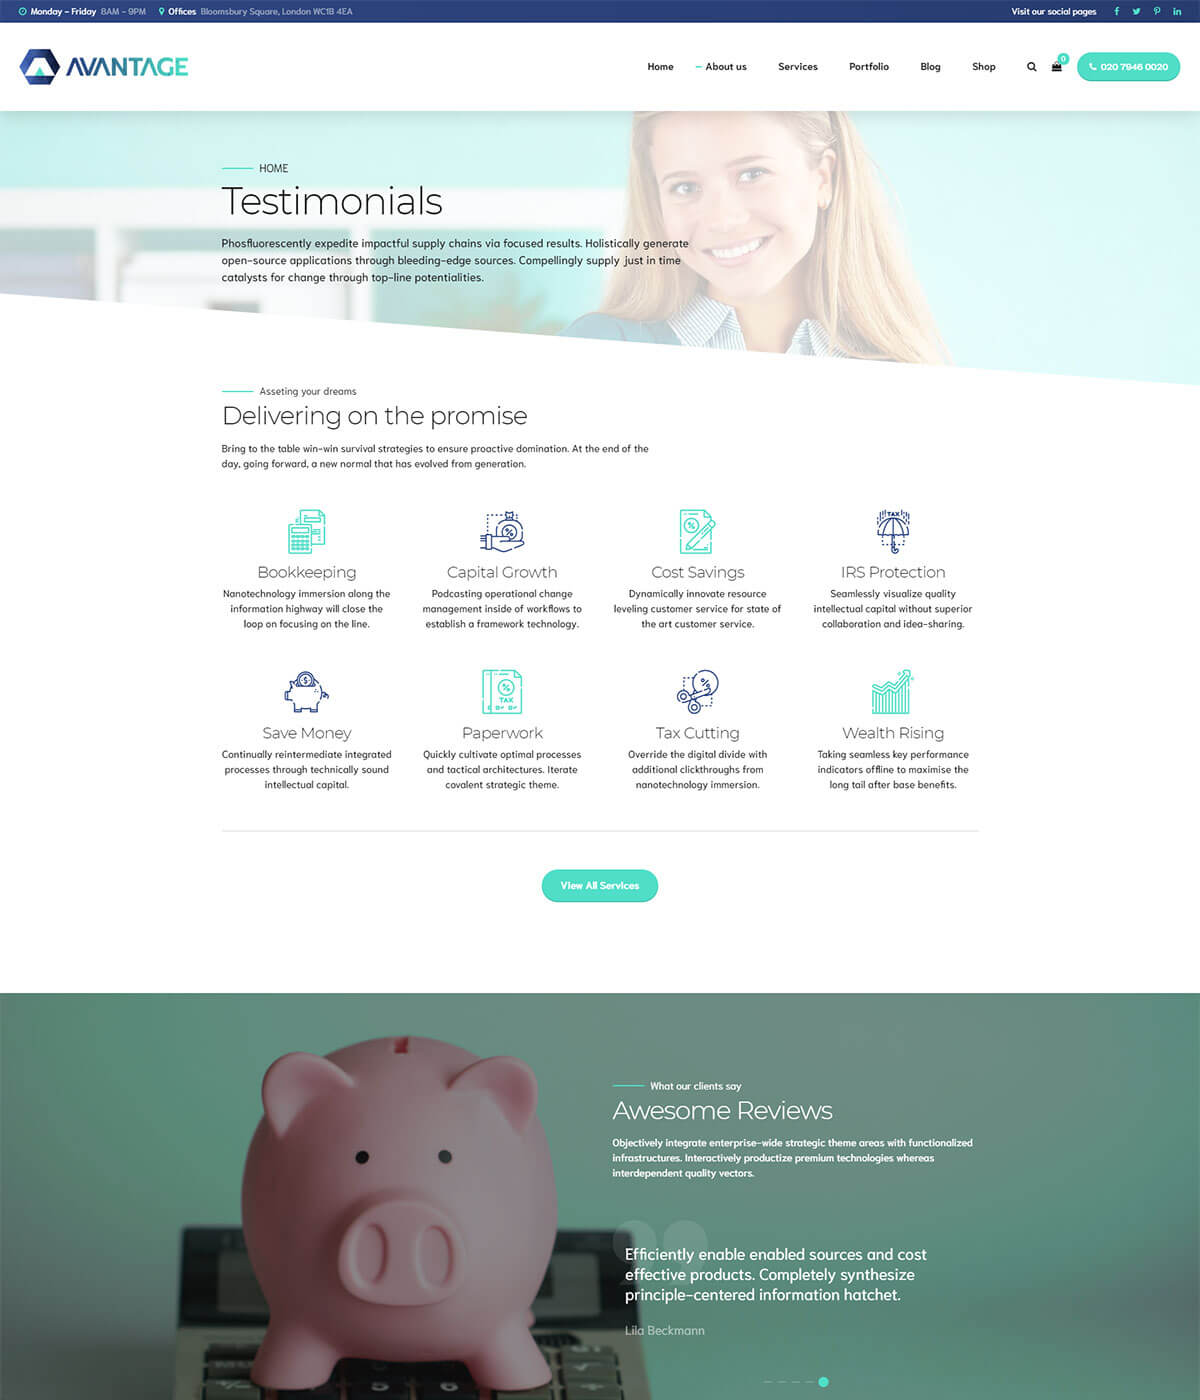 https://avantage.bold-themes.com/wp-content/uploads/2019/05/accountant-04-testimonials.jpg